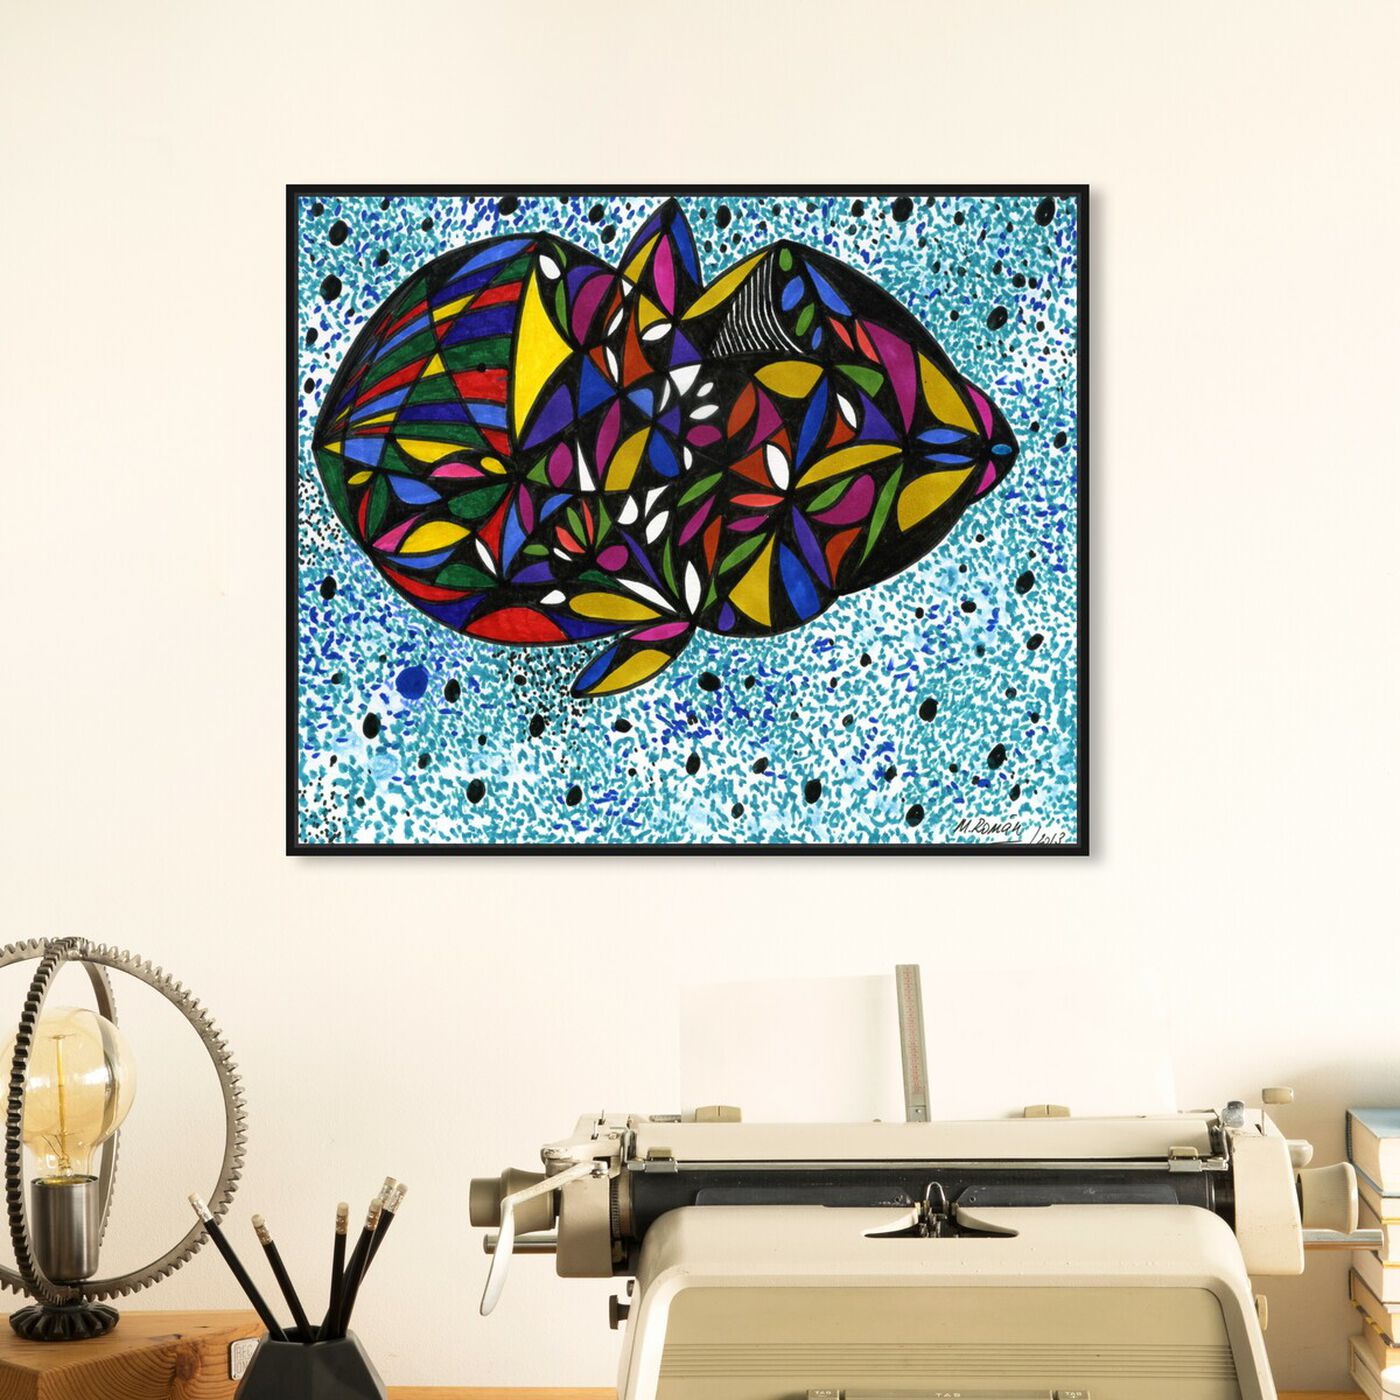 Hanging view of Cuttlefish featuring abstract and geometric art.